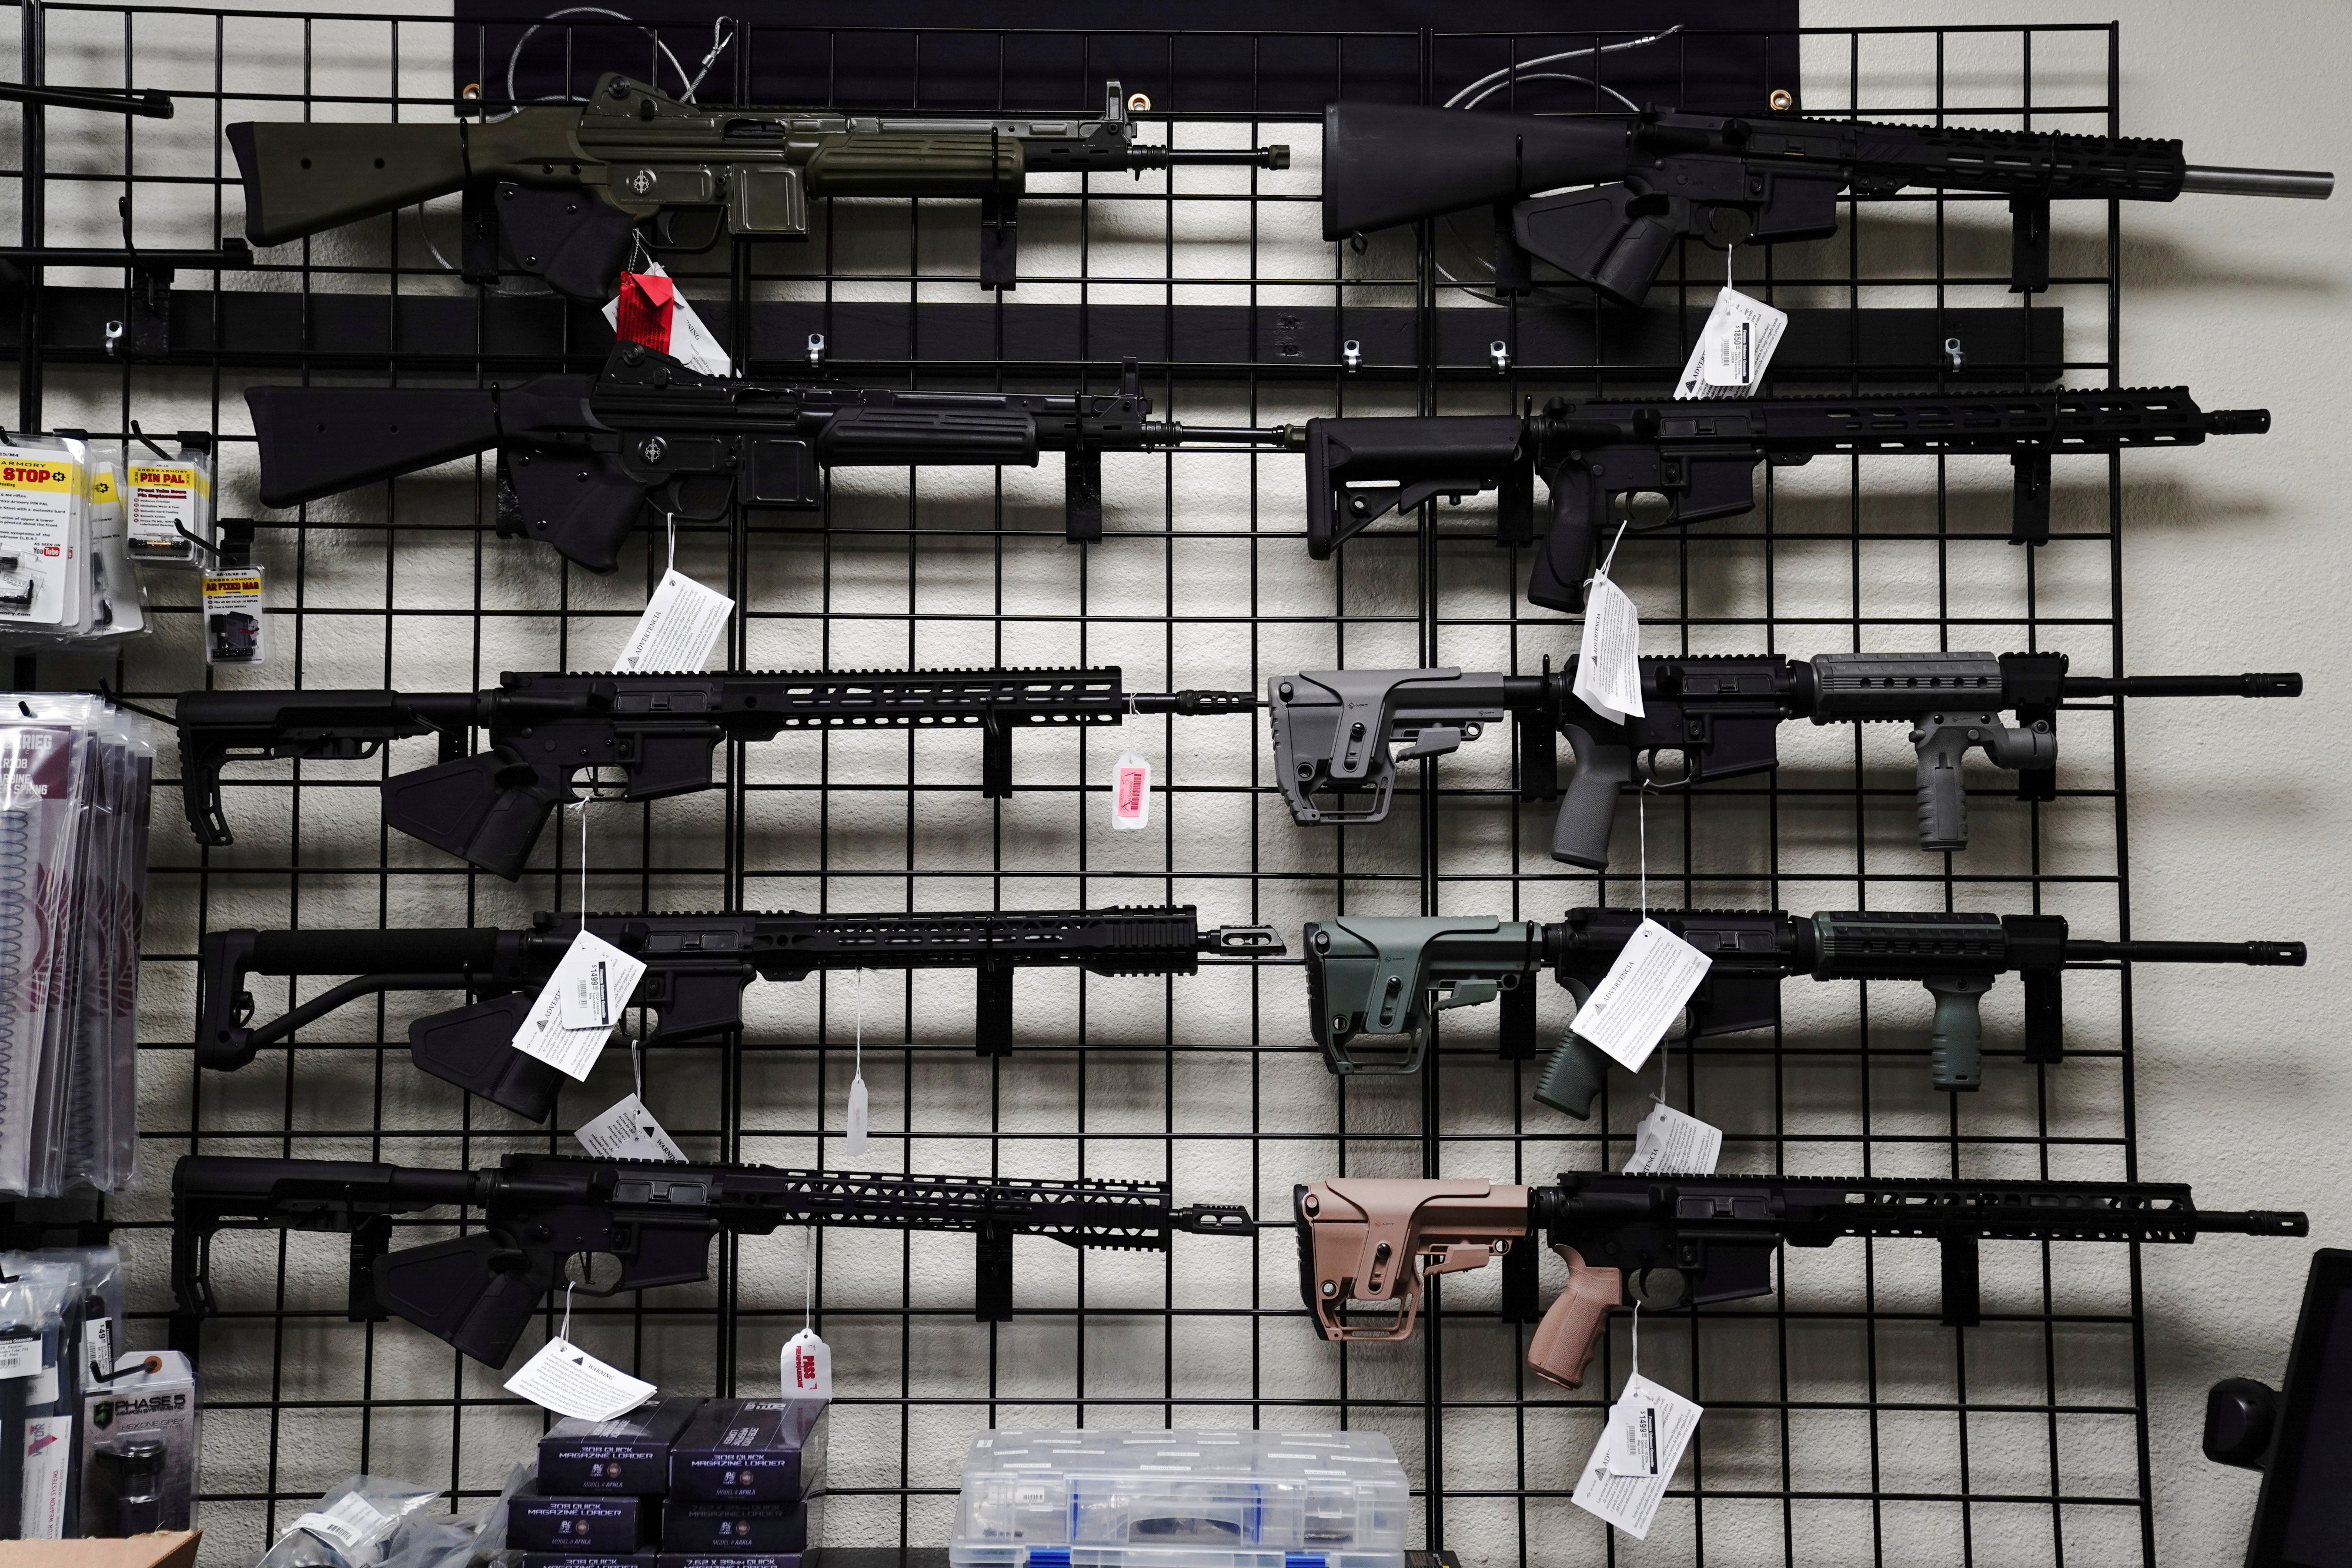 AR-15 style rifles are displayed for sale at Firearms Unknown, a gun store in Oceanside, California, U.S., April 12, 2021. REUTERS/Bing Guan/File Photo/File Photo